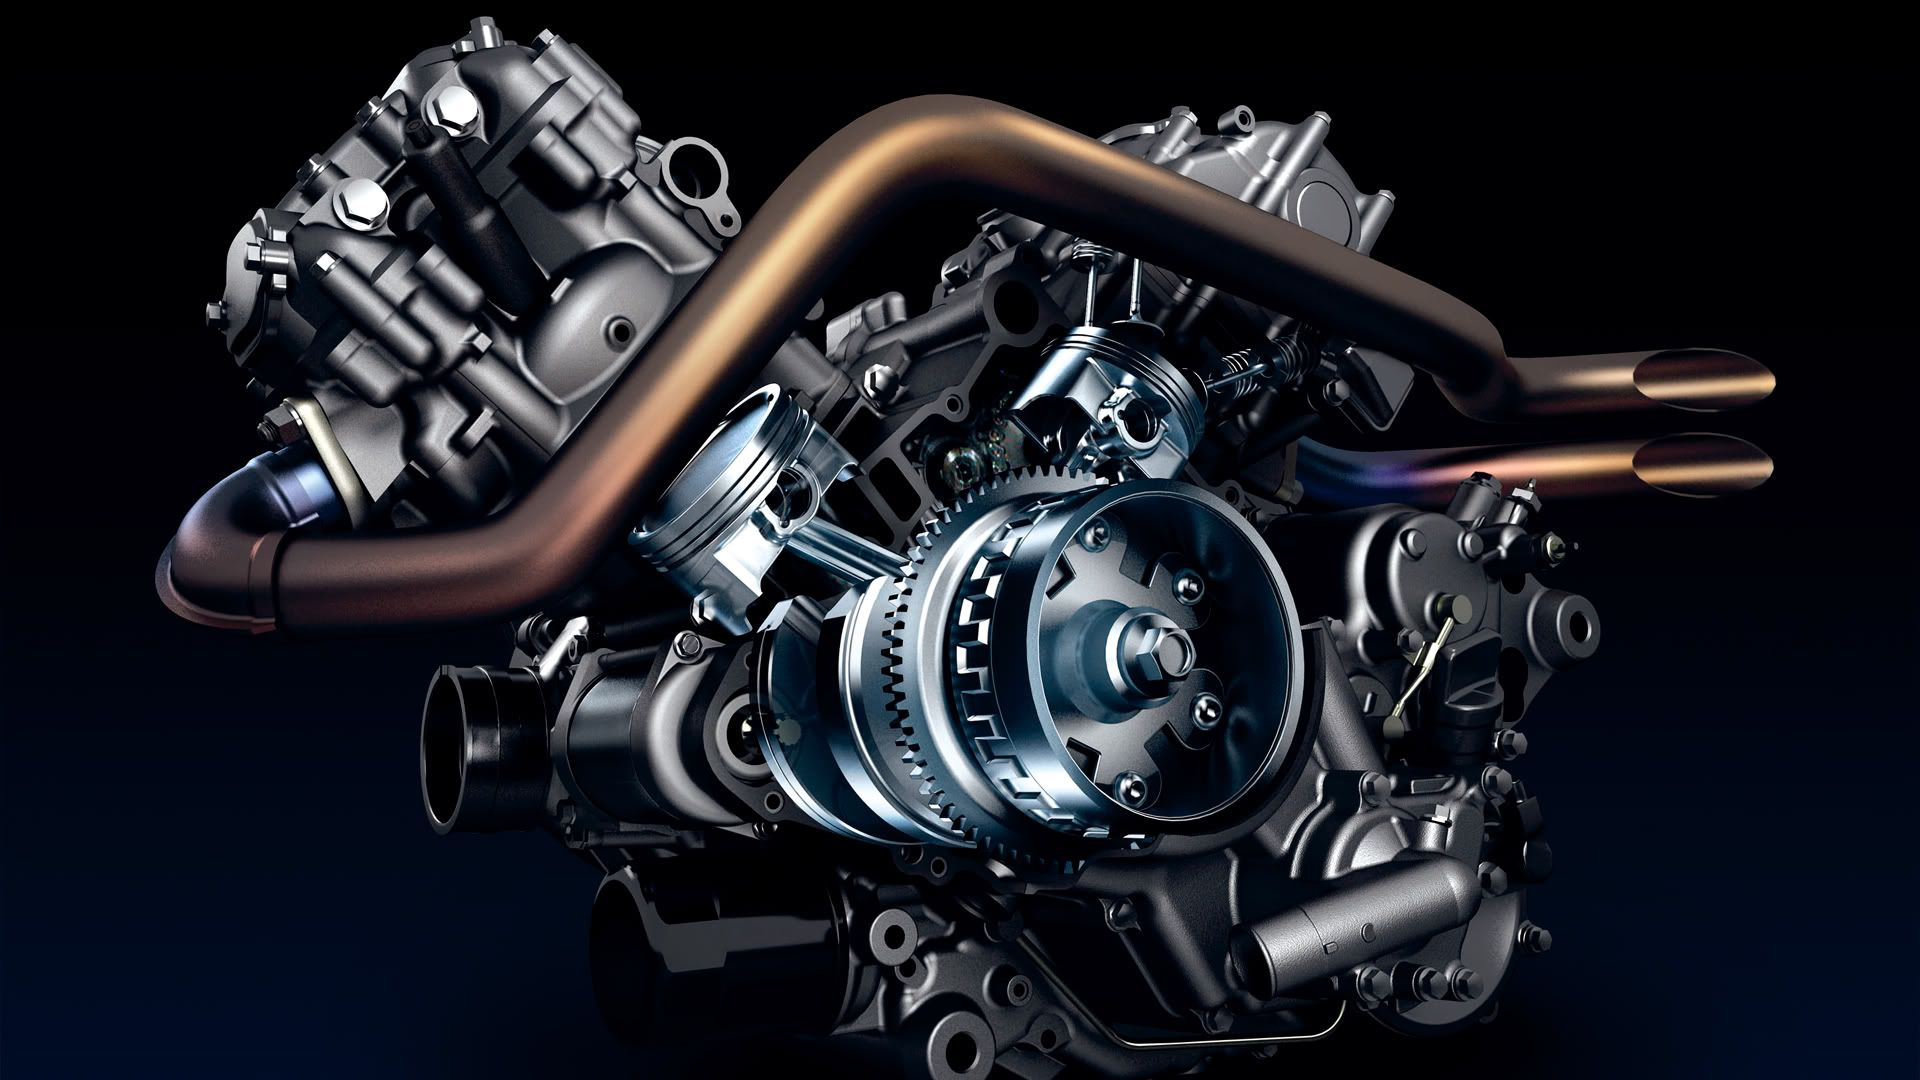 40 HD Engine Wallpapers, Engine Backgrounds Automobile